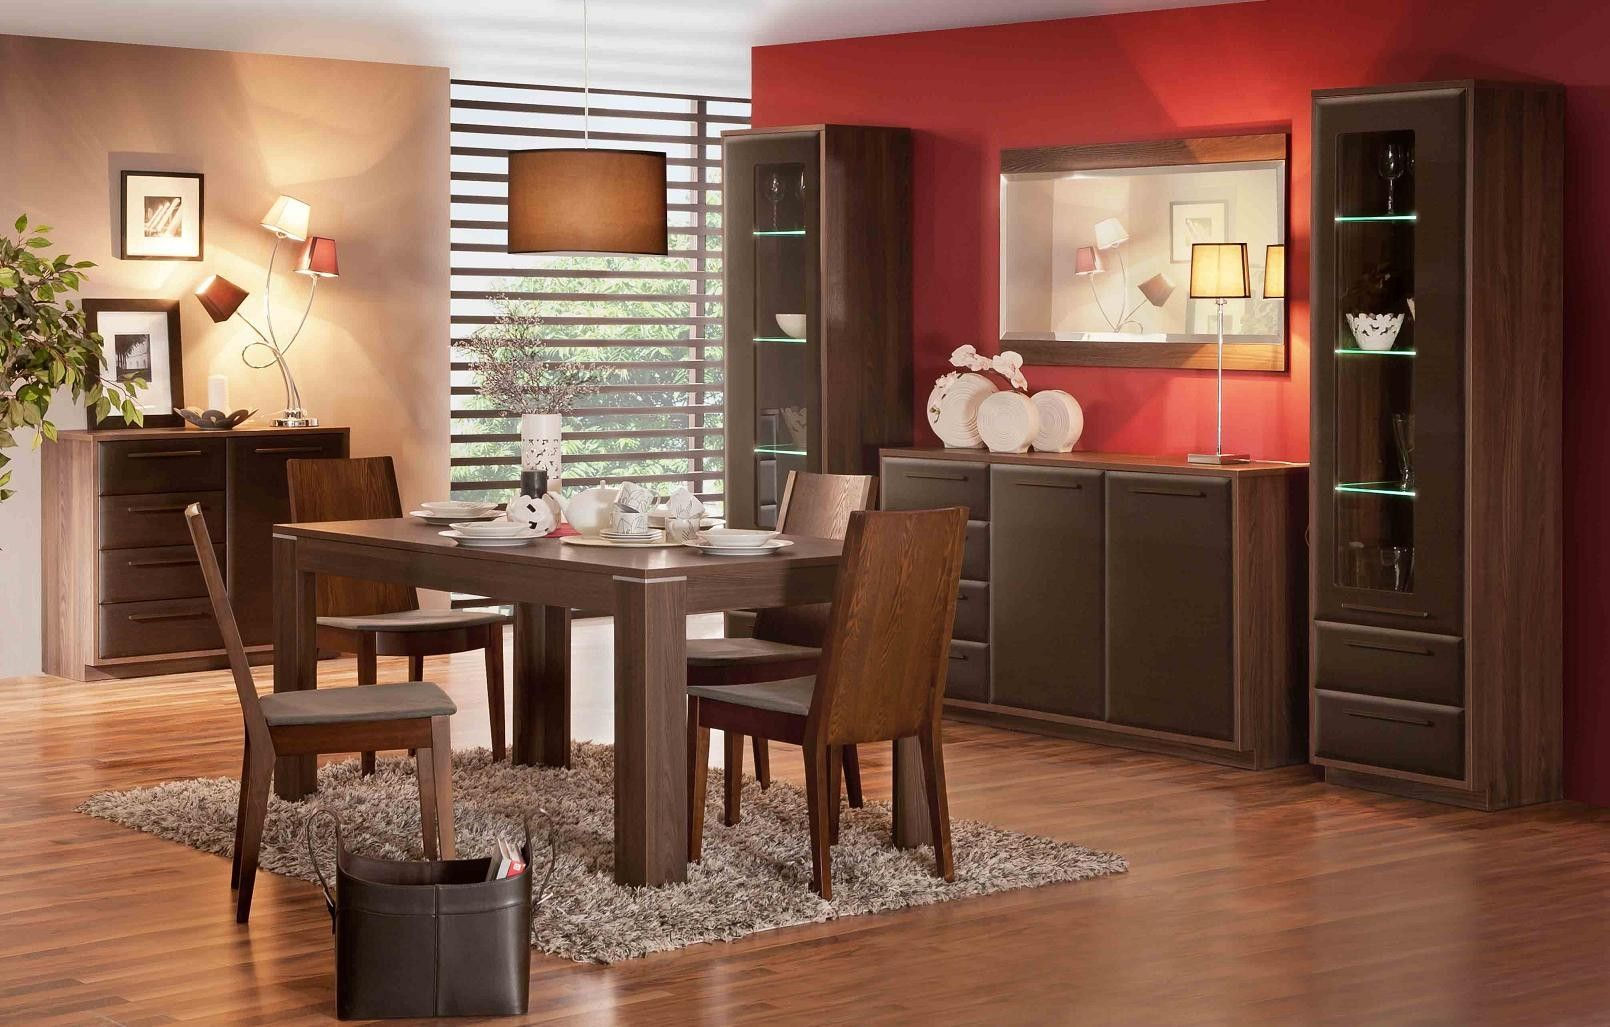 Red And Beige Colors For Dining Room Painting Ideas With Traditional Brown Wood Rectangle Shaped Table That Have Countertop Decorating Also Rustic